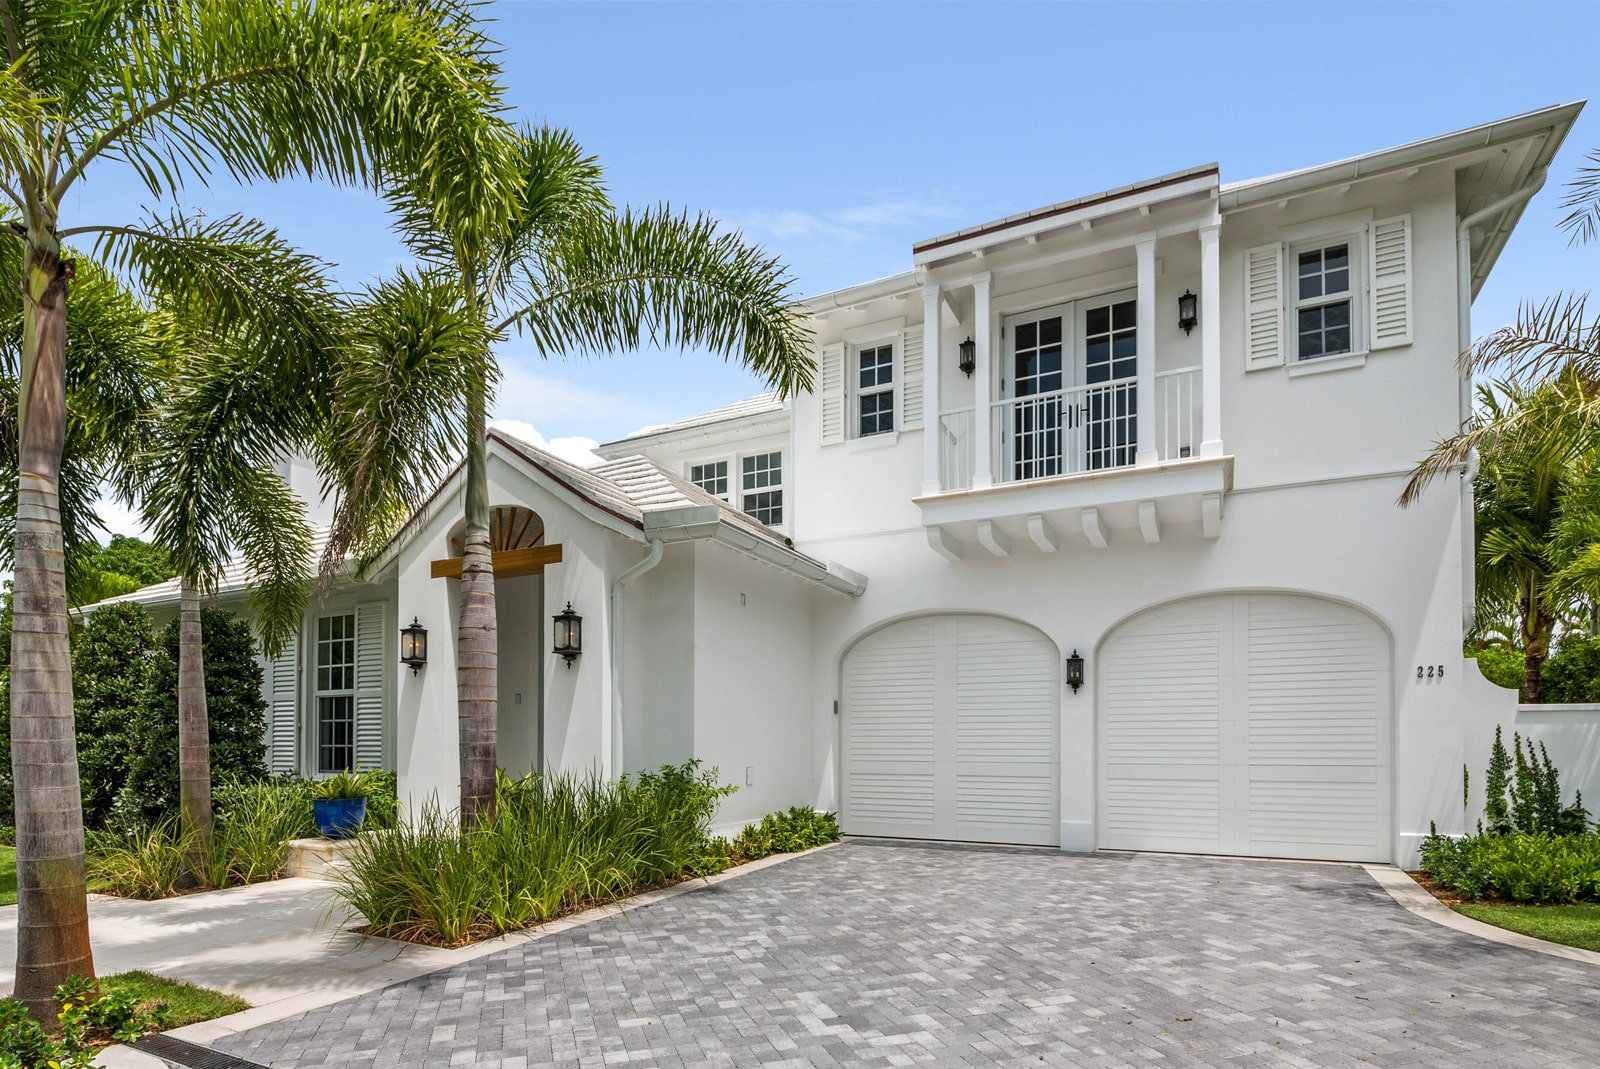 2 car garage home remodeled by Ecclestone Homes